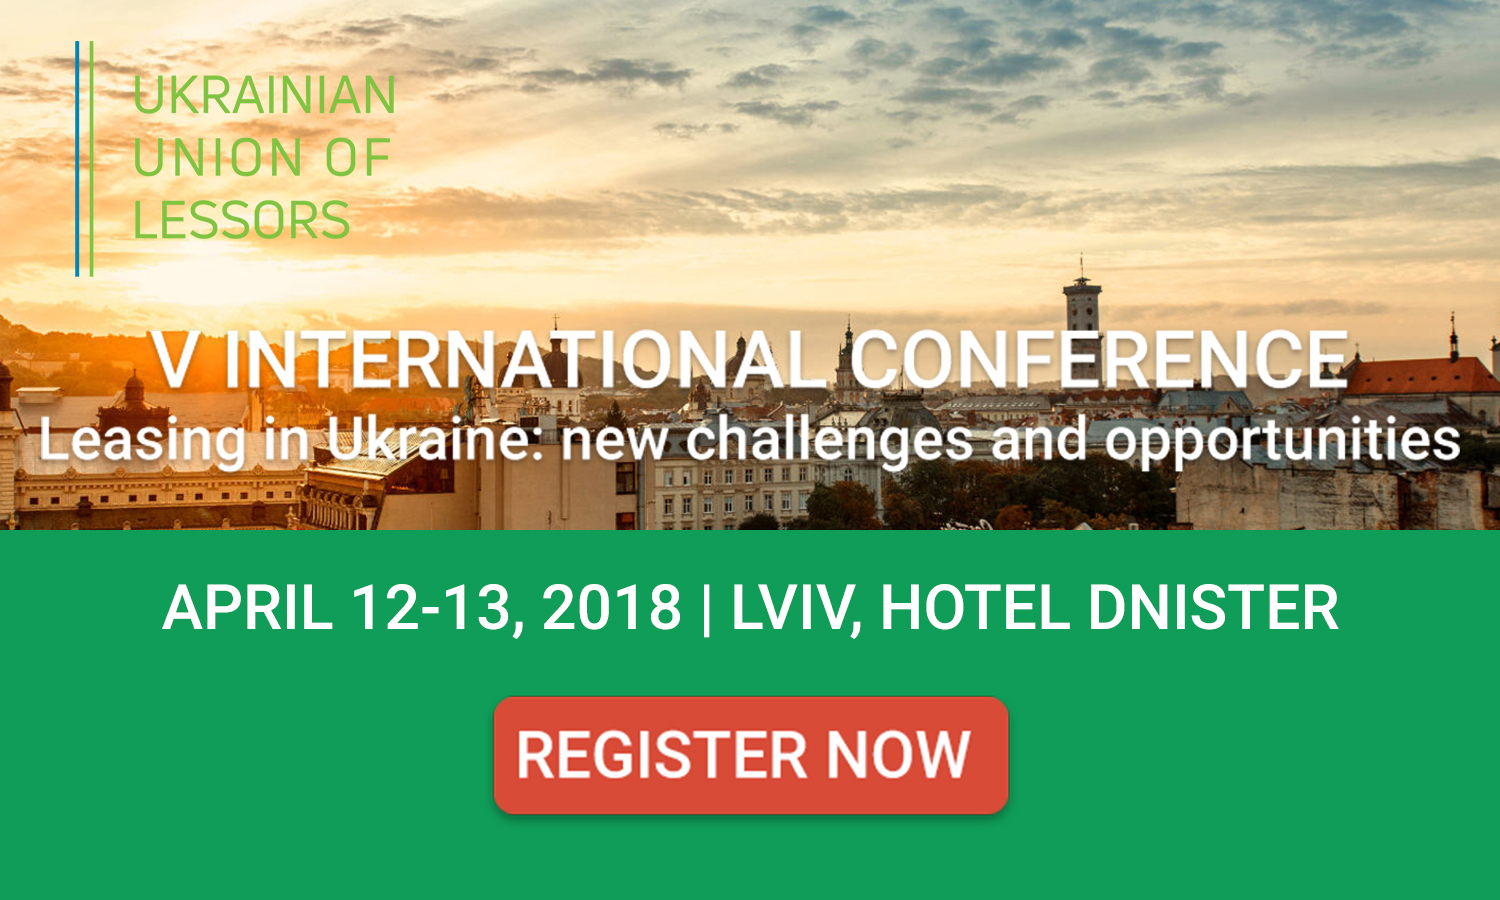 Leasing in Ukraine Conference